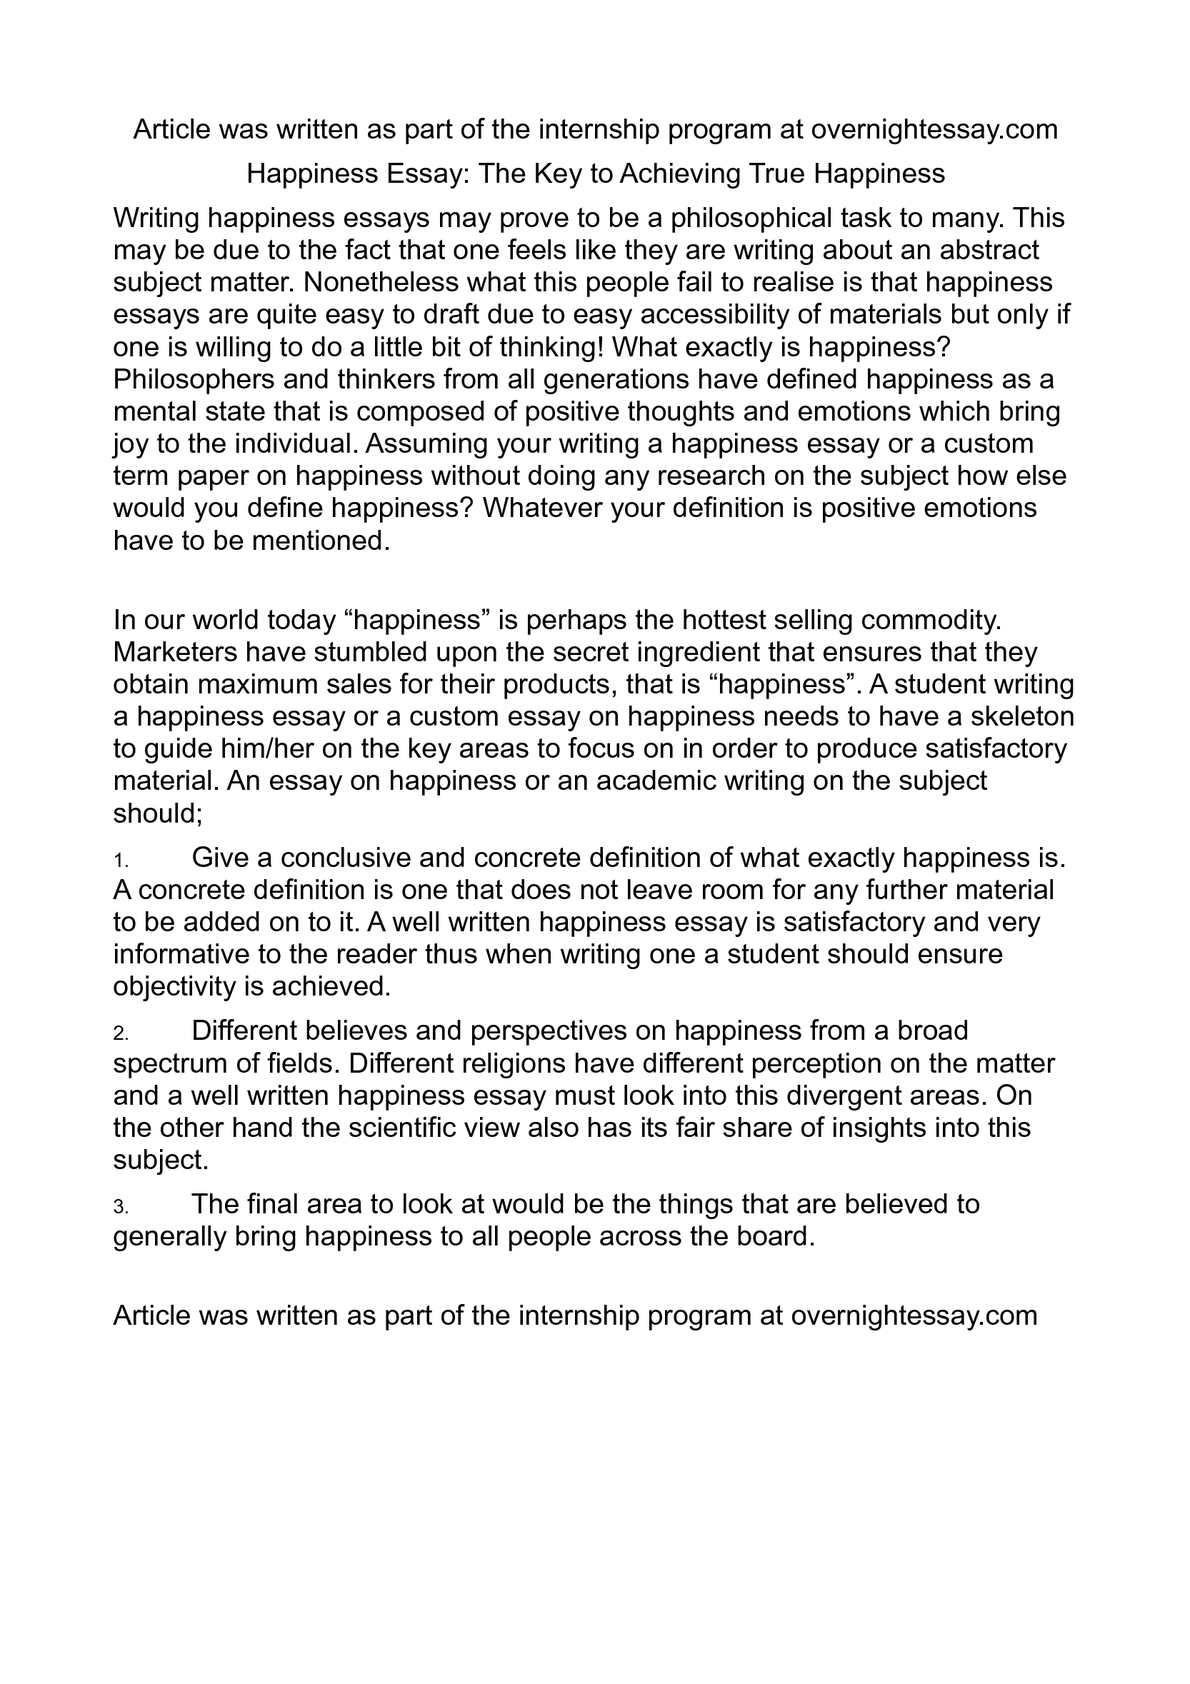 essay on a rose for emily by william faulkner a rose for emily  what is happiness essay essay happiness boloipnodns calam atilde copy o calamatildecopyo happiness essay the key